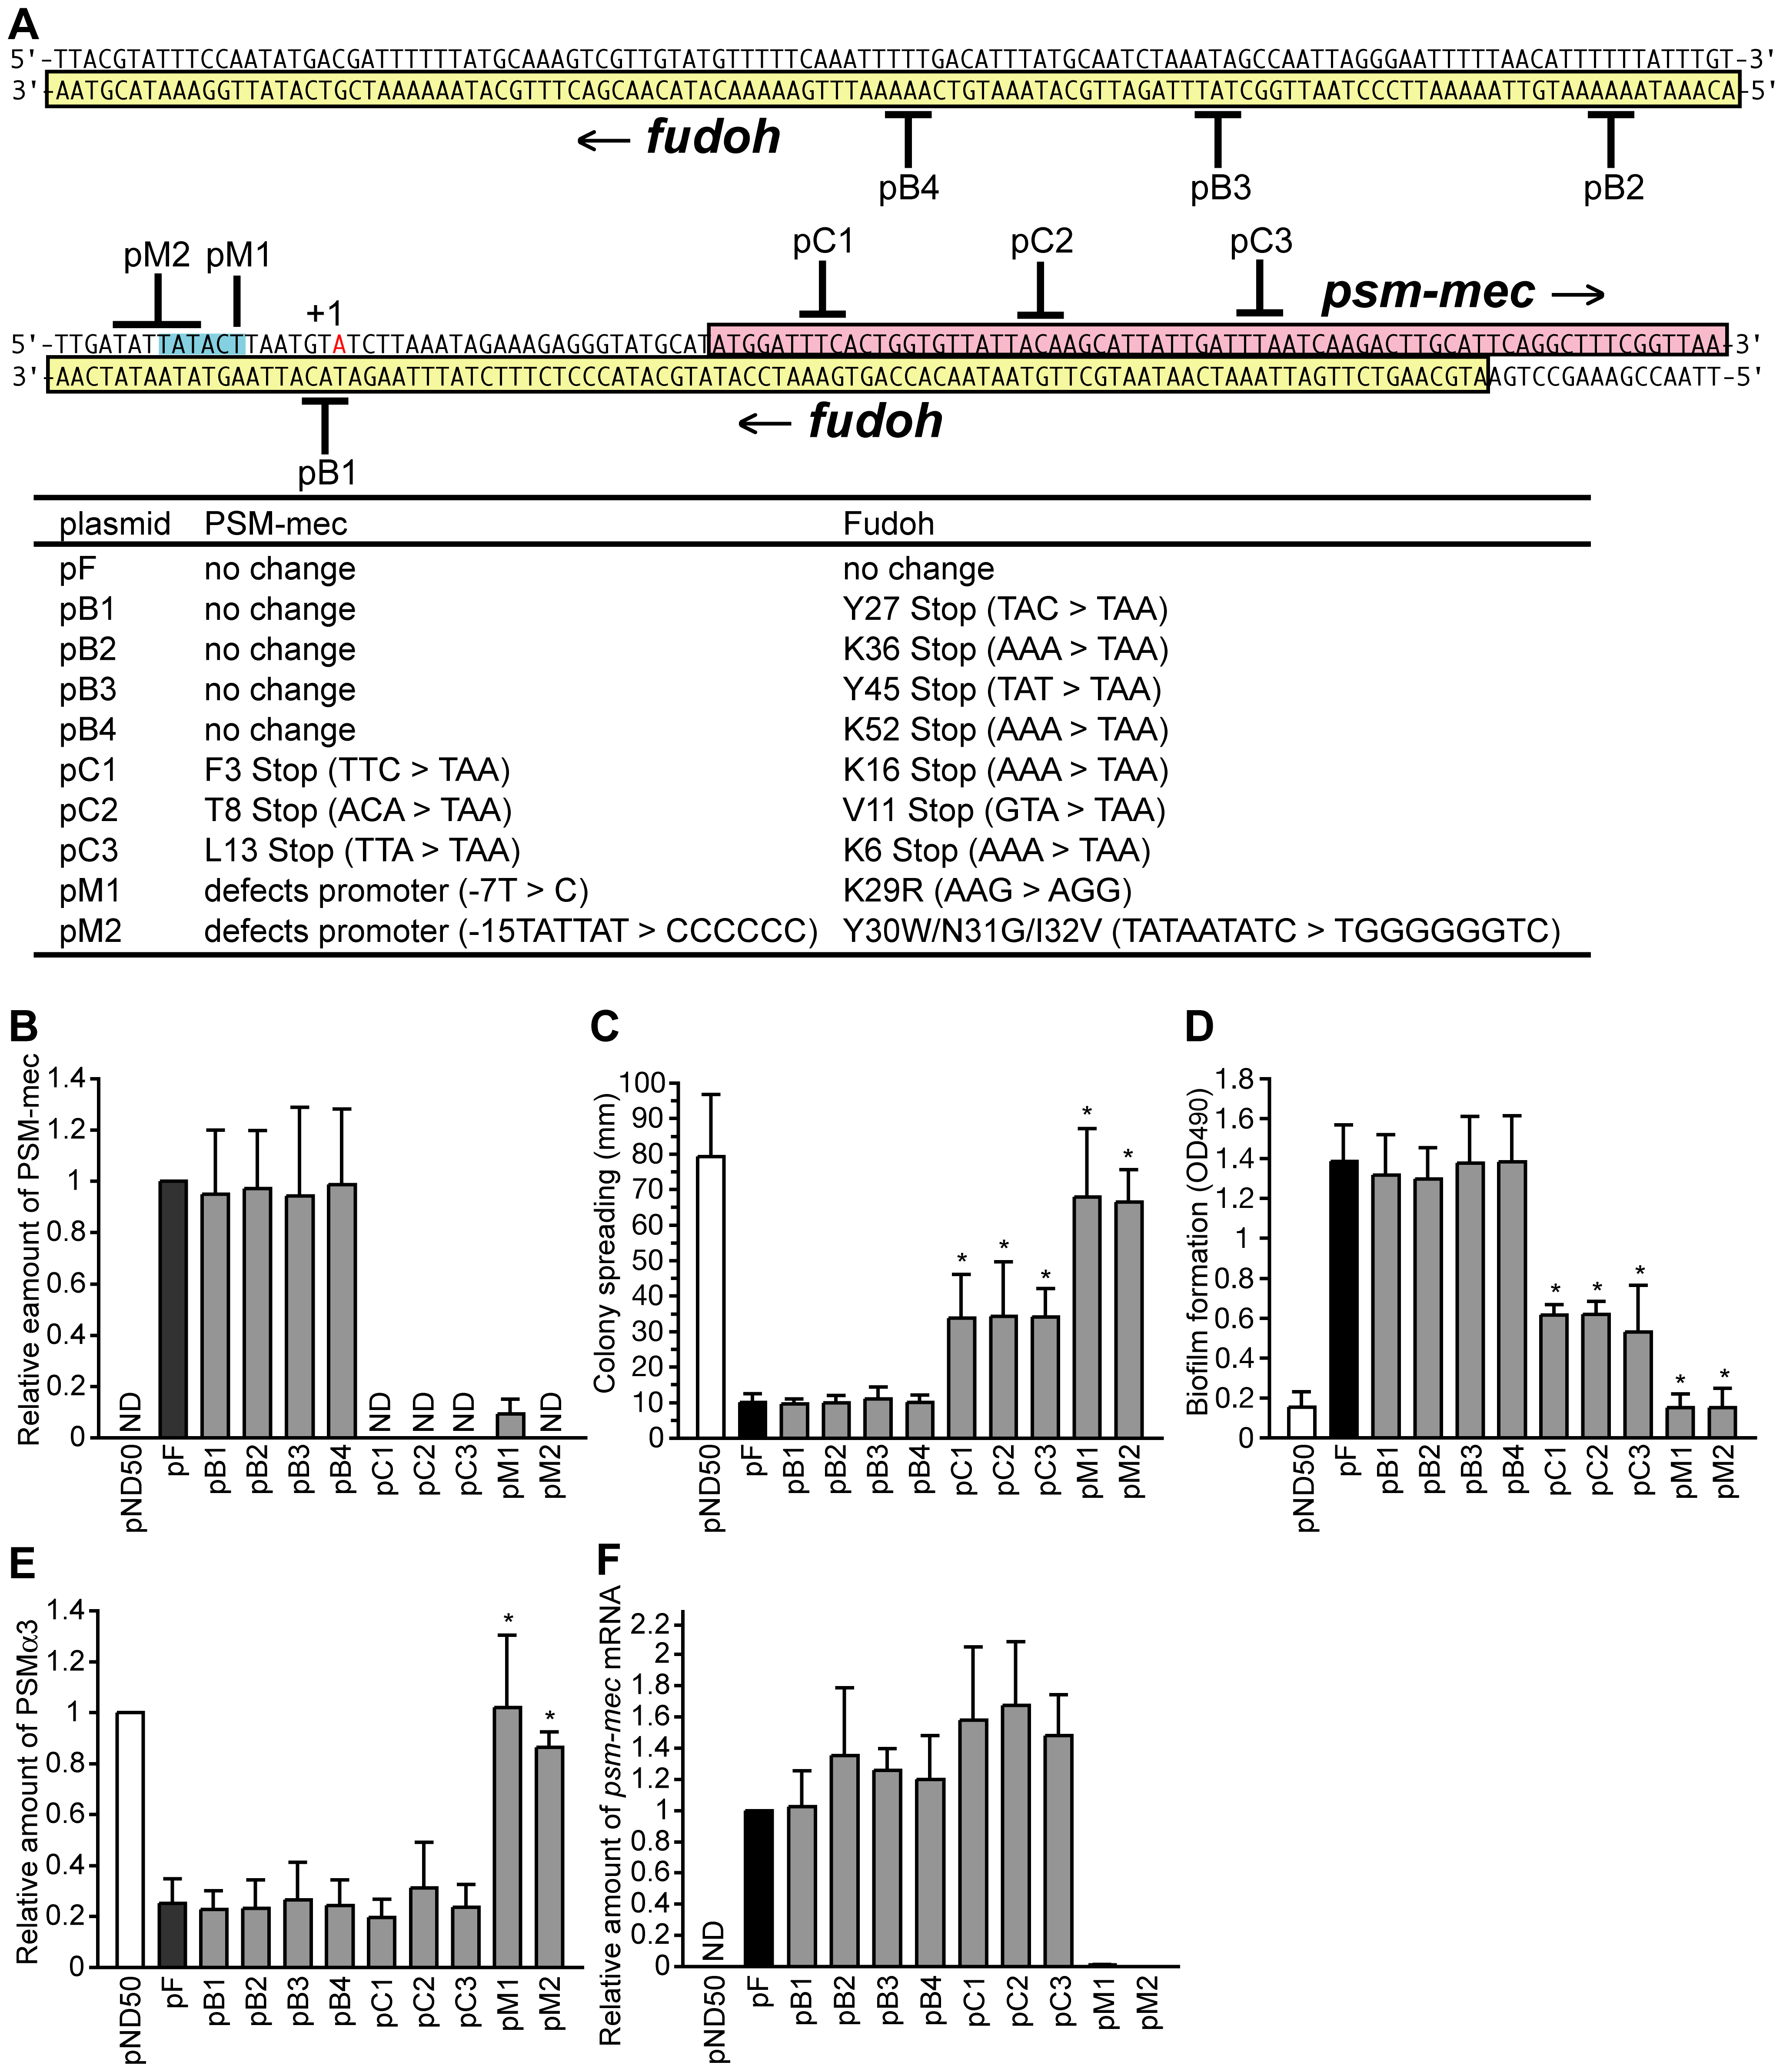 Analysis of nucleotide substitutions in the F region.